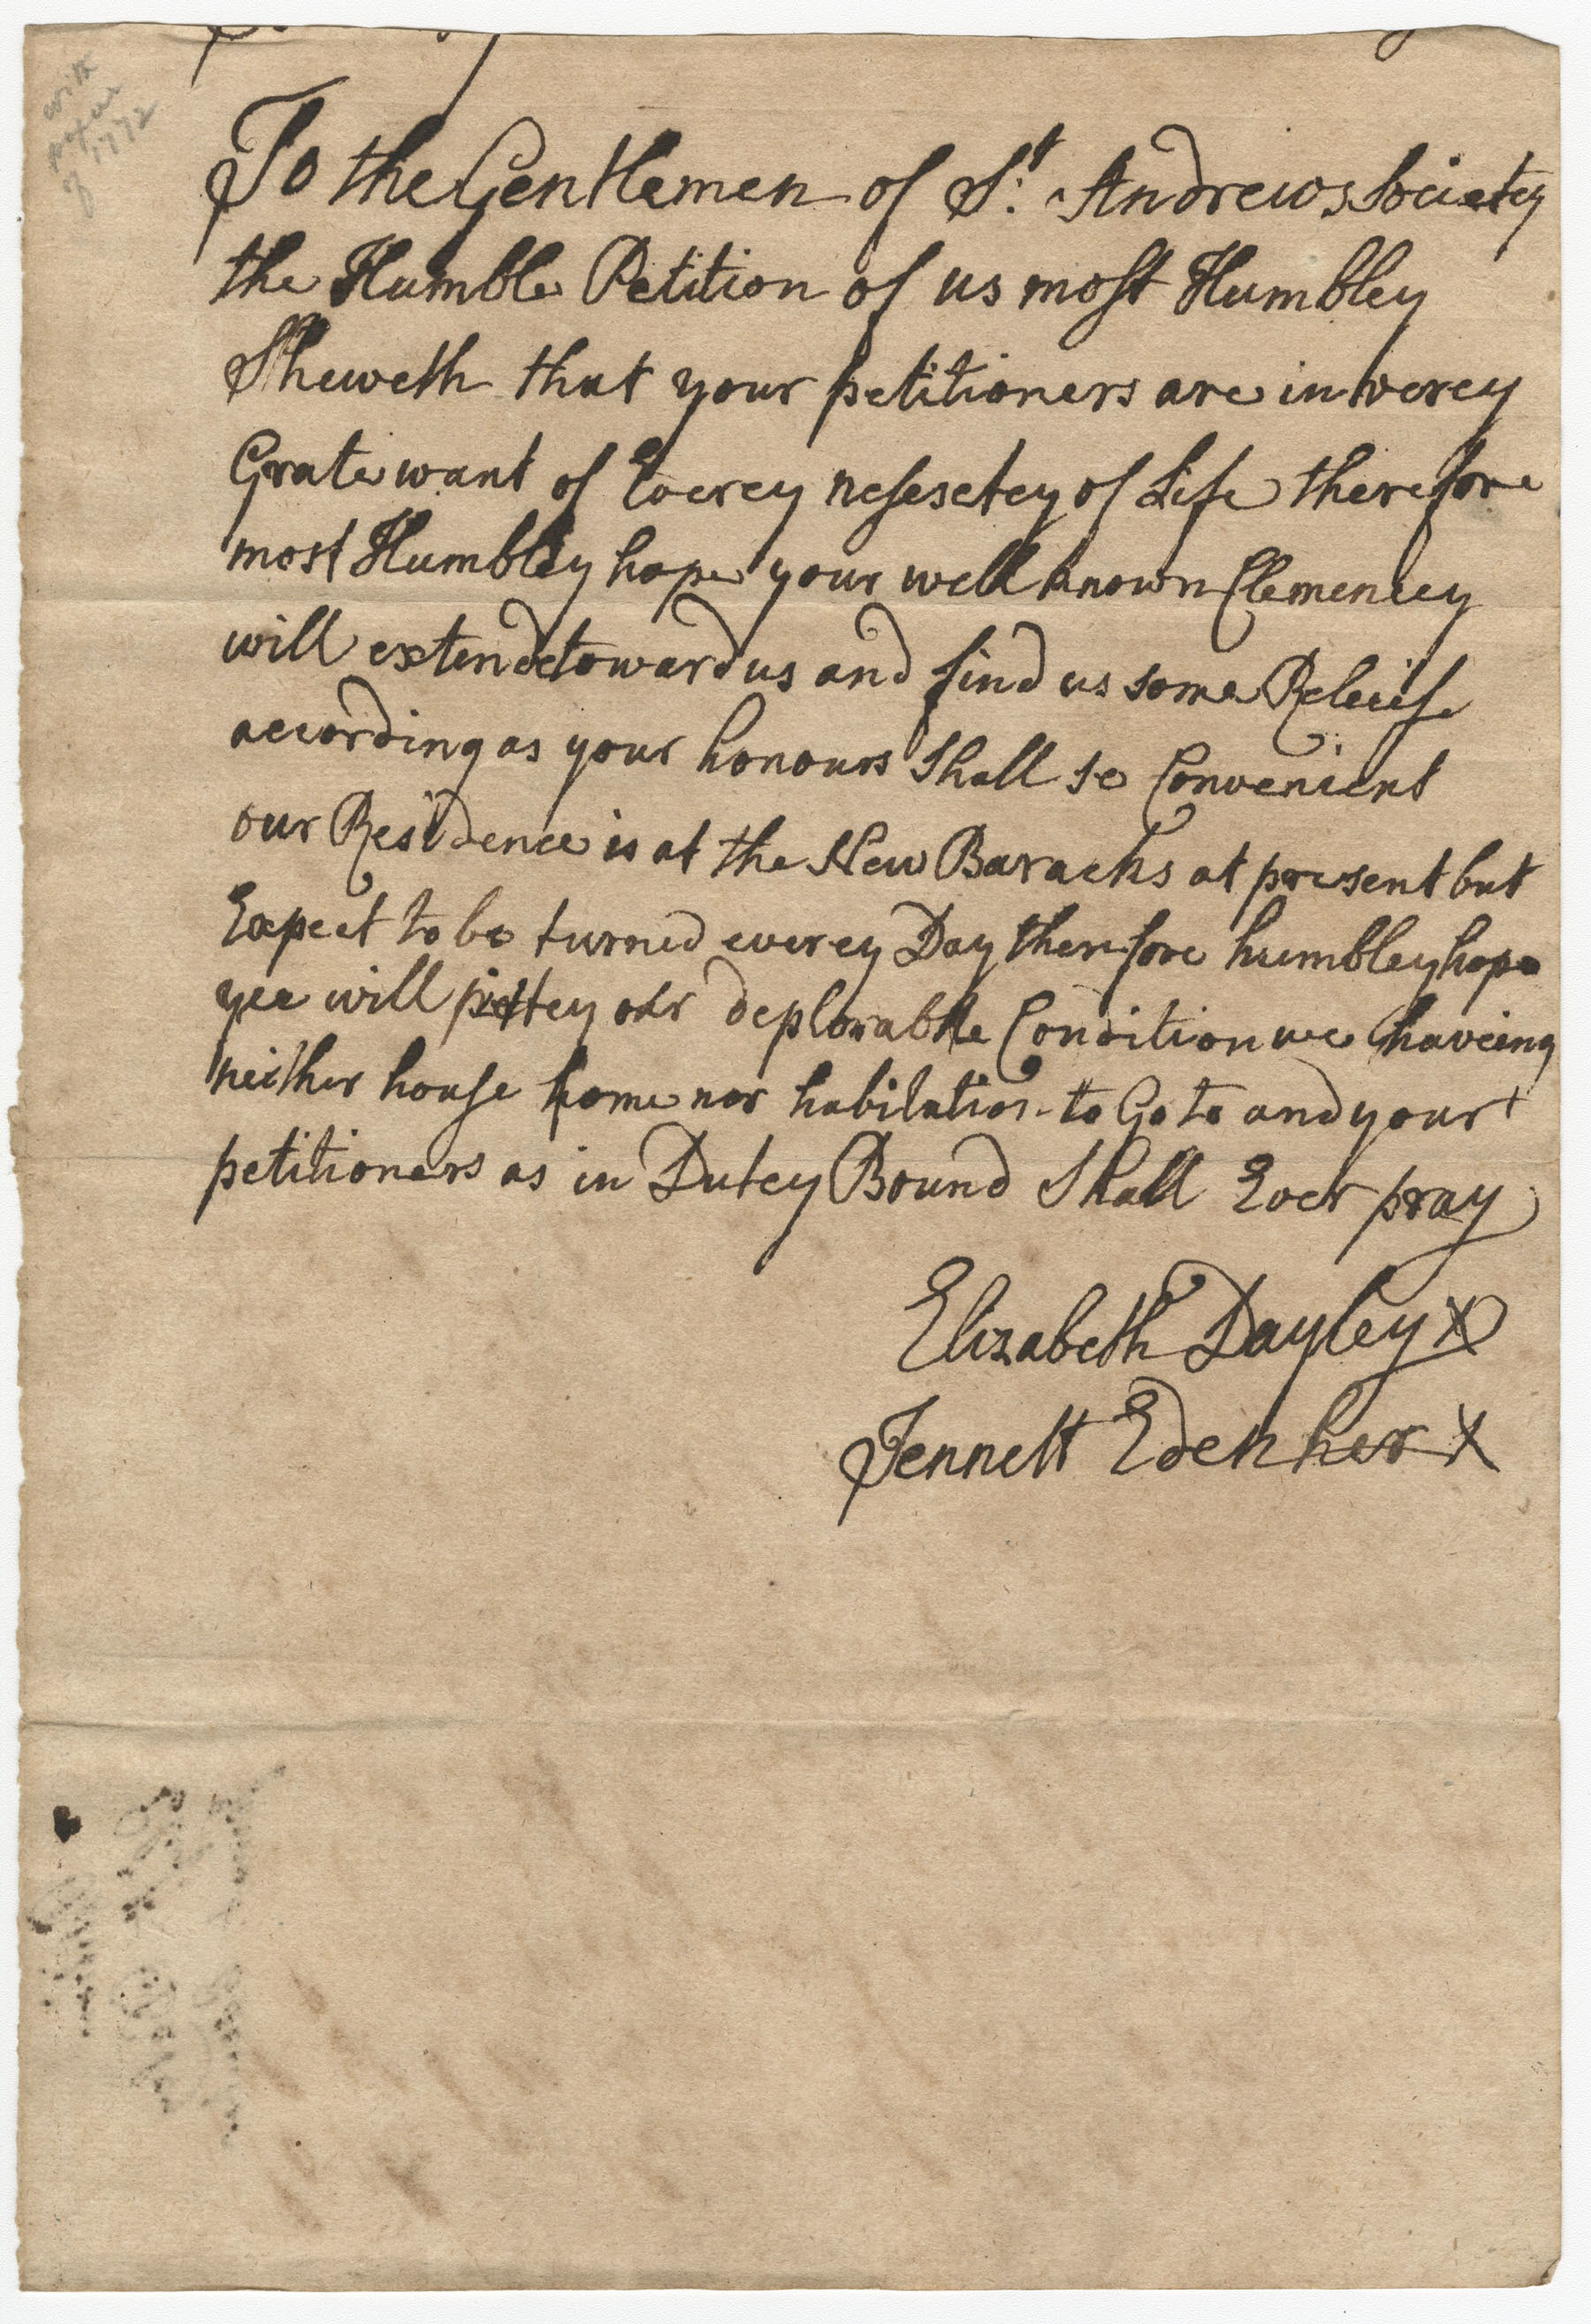 Petition from Elisabeth Dayley and Jennett Edenher to the St. Andrew's Society